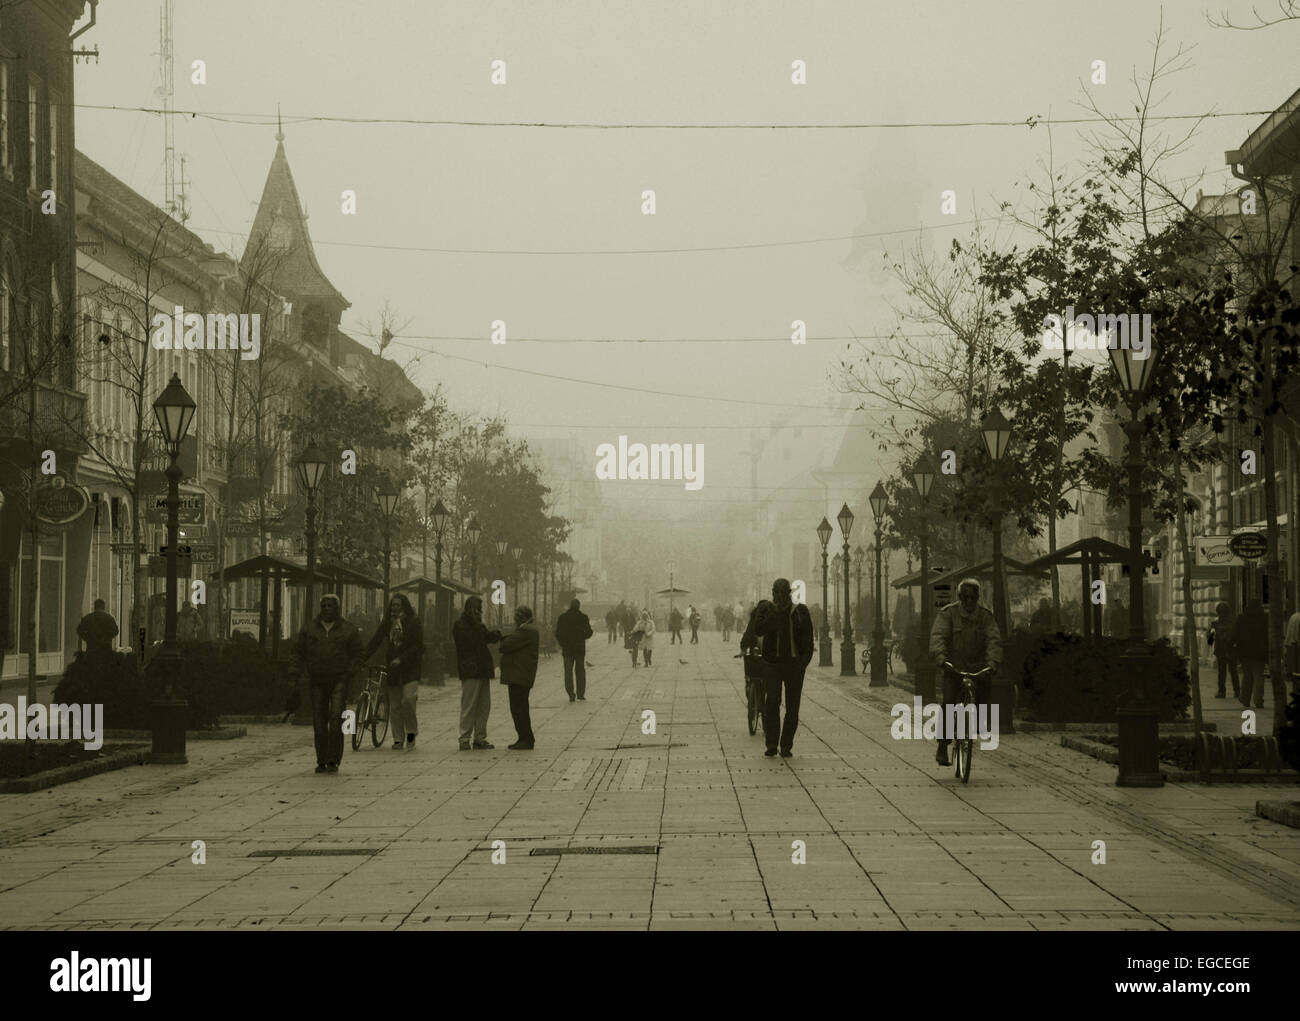 City centre in fog in sepia effect - Stock Image